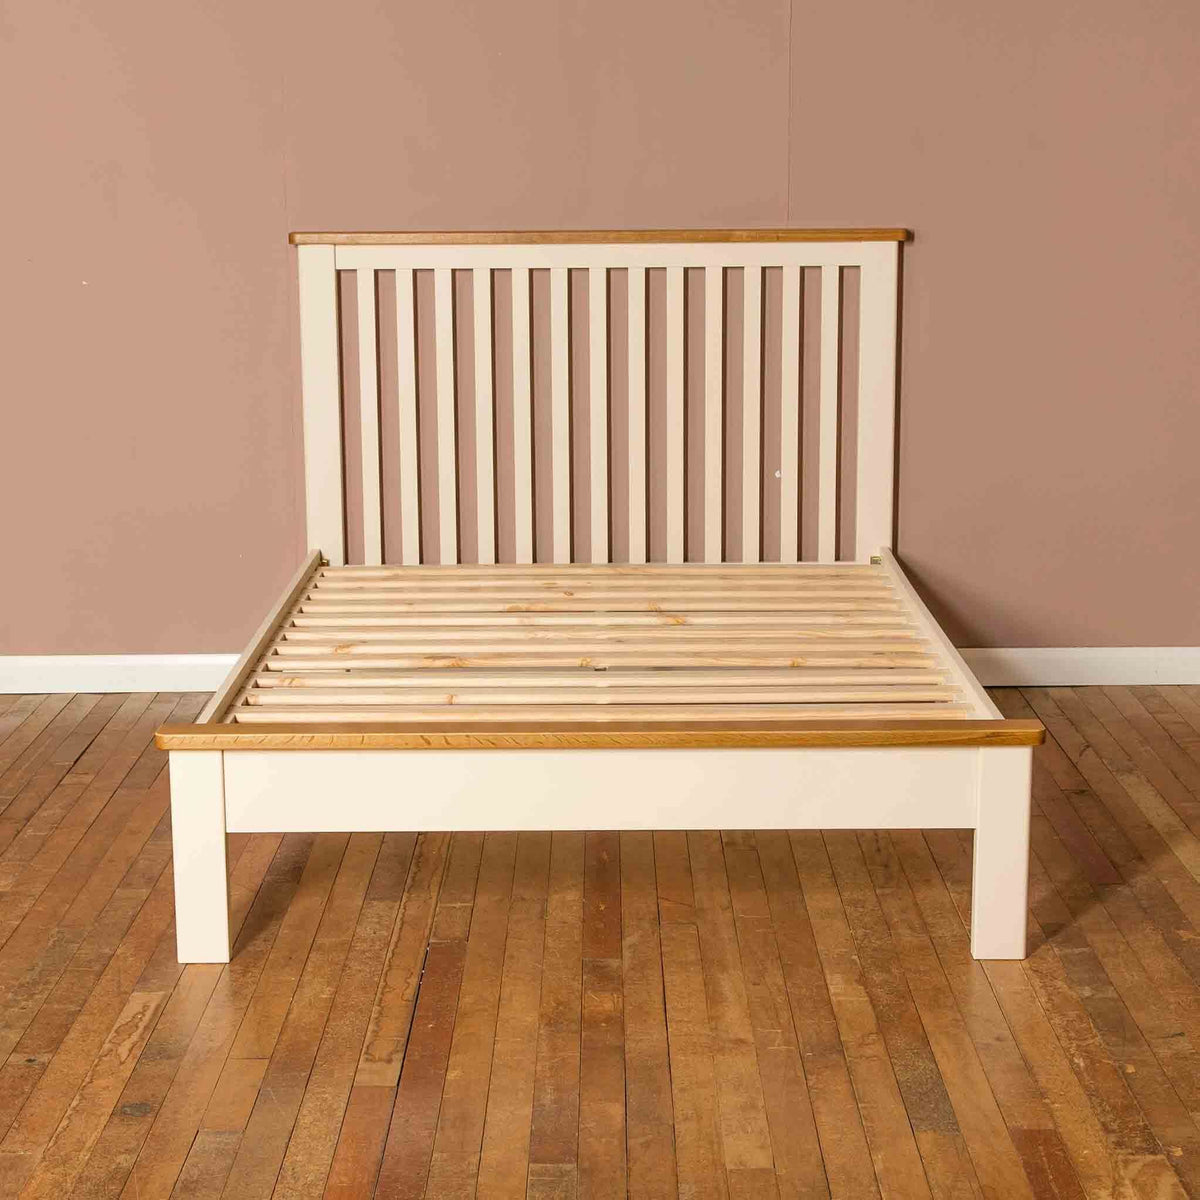 The Padstow Cream 4 ft 6 Wooden Double Bed Frame with Oak from Roseland Furniture